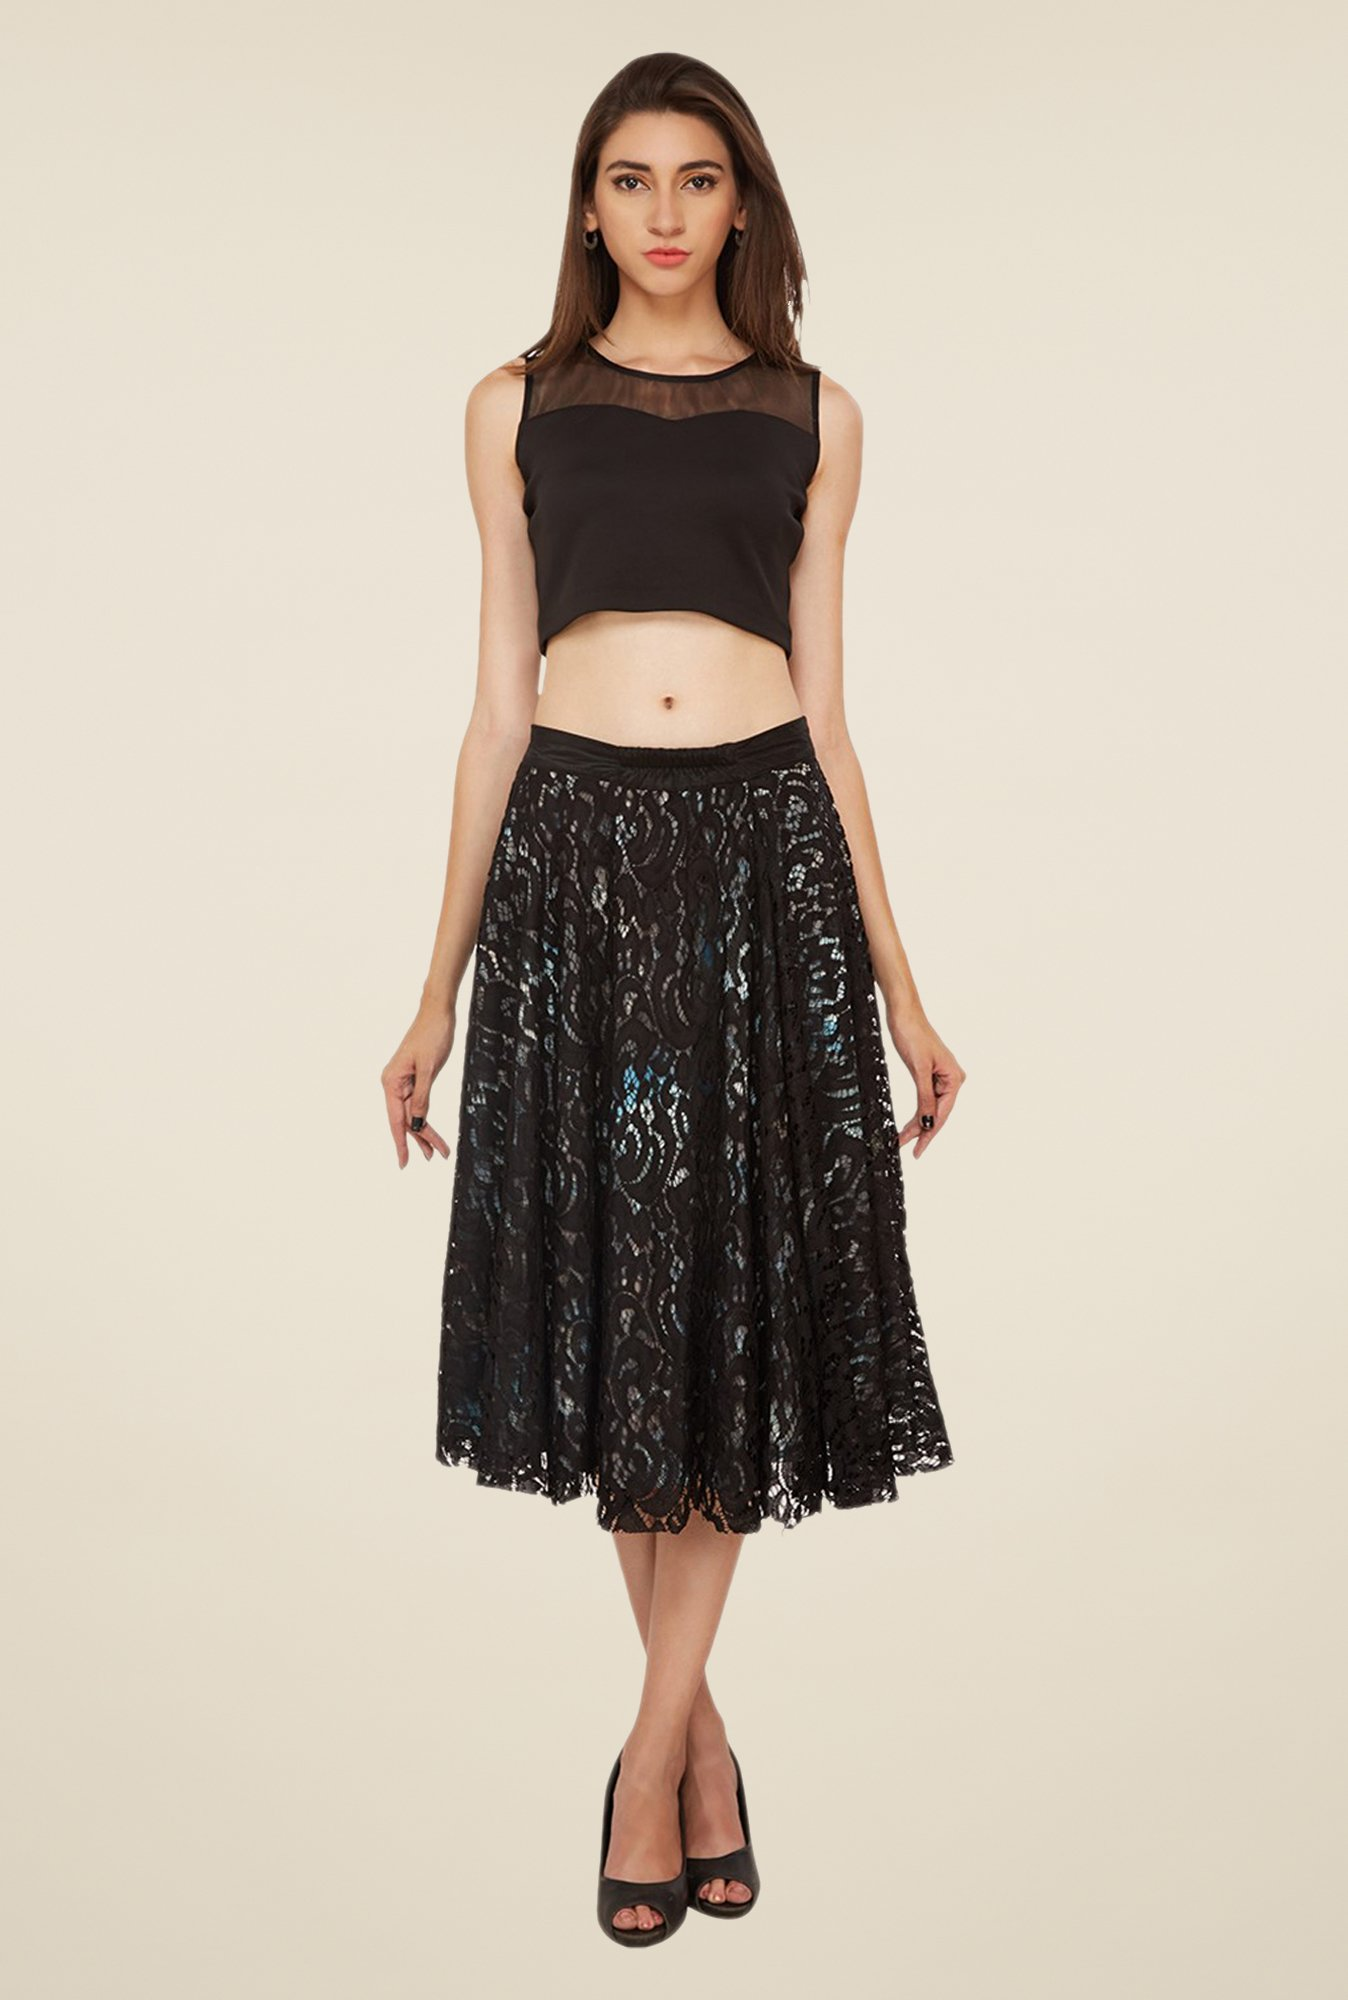 Soie Black Flared Skirt